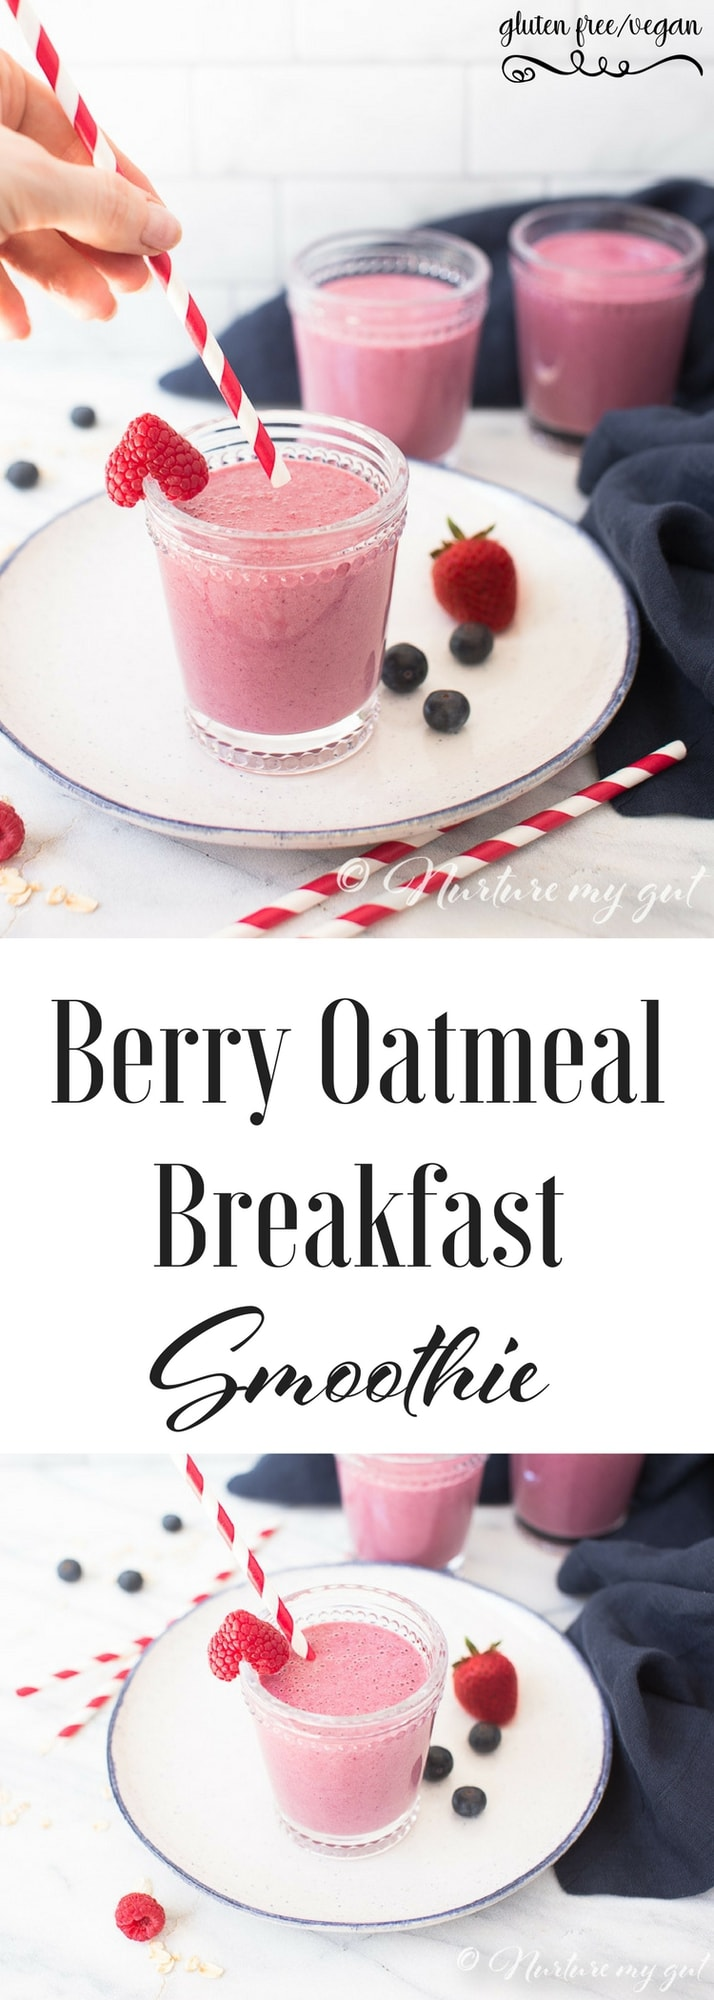 Berry Oatmeal Breakfast